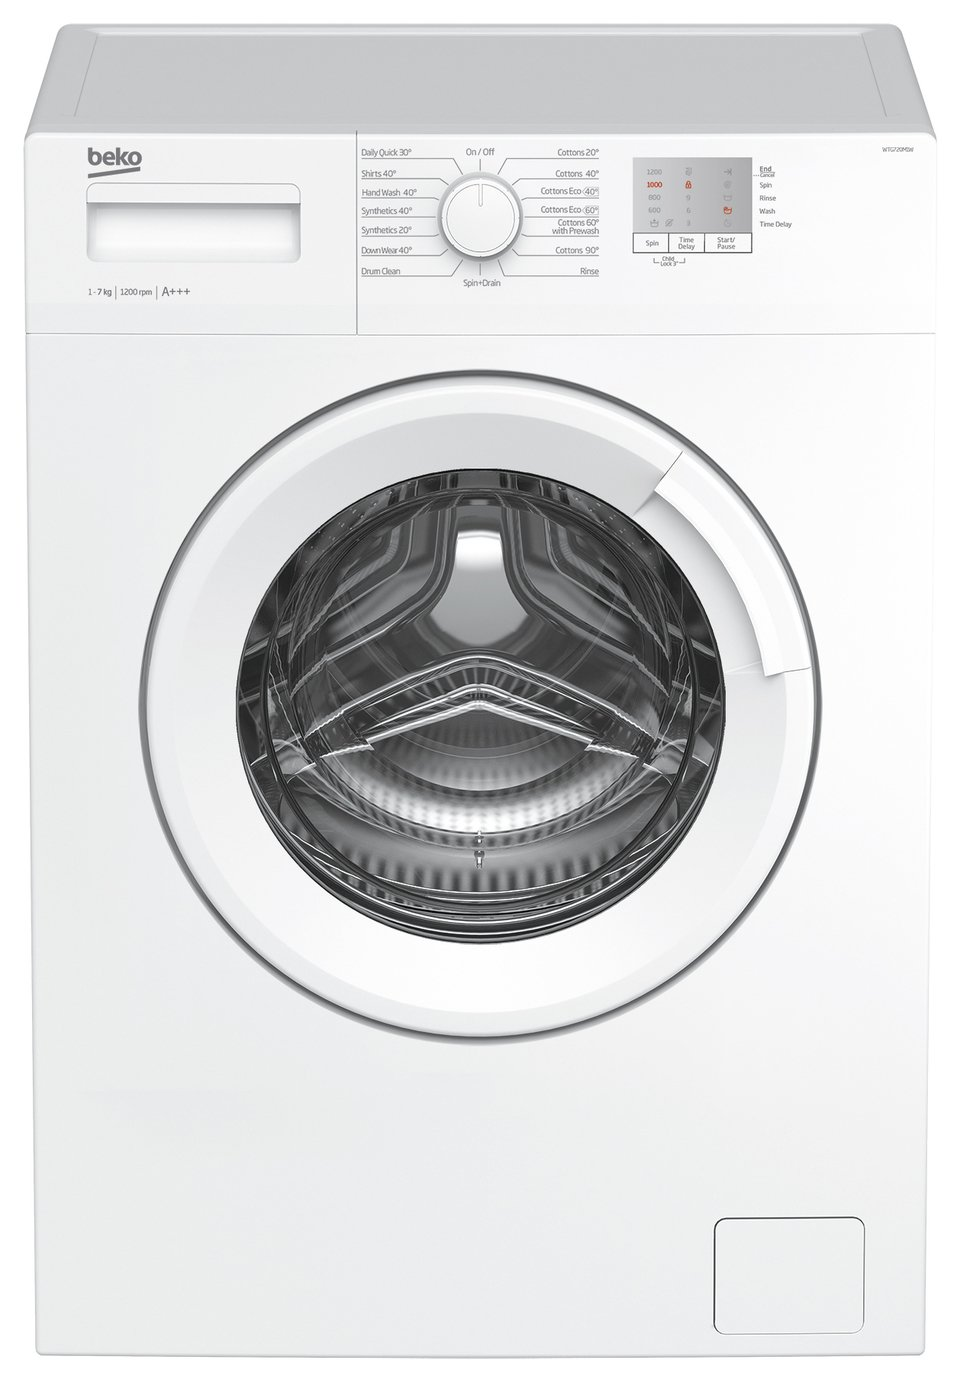 Beko WTG720M1W 7KG 1200 Spin Washing Machine - White from Beko